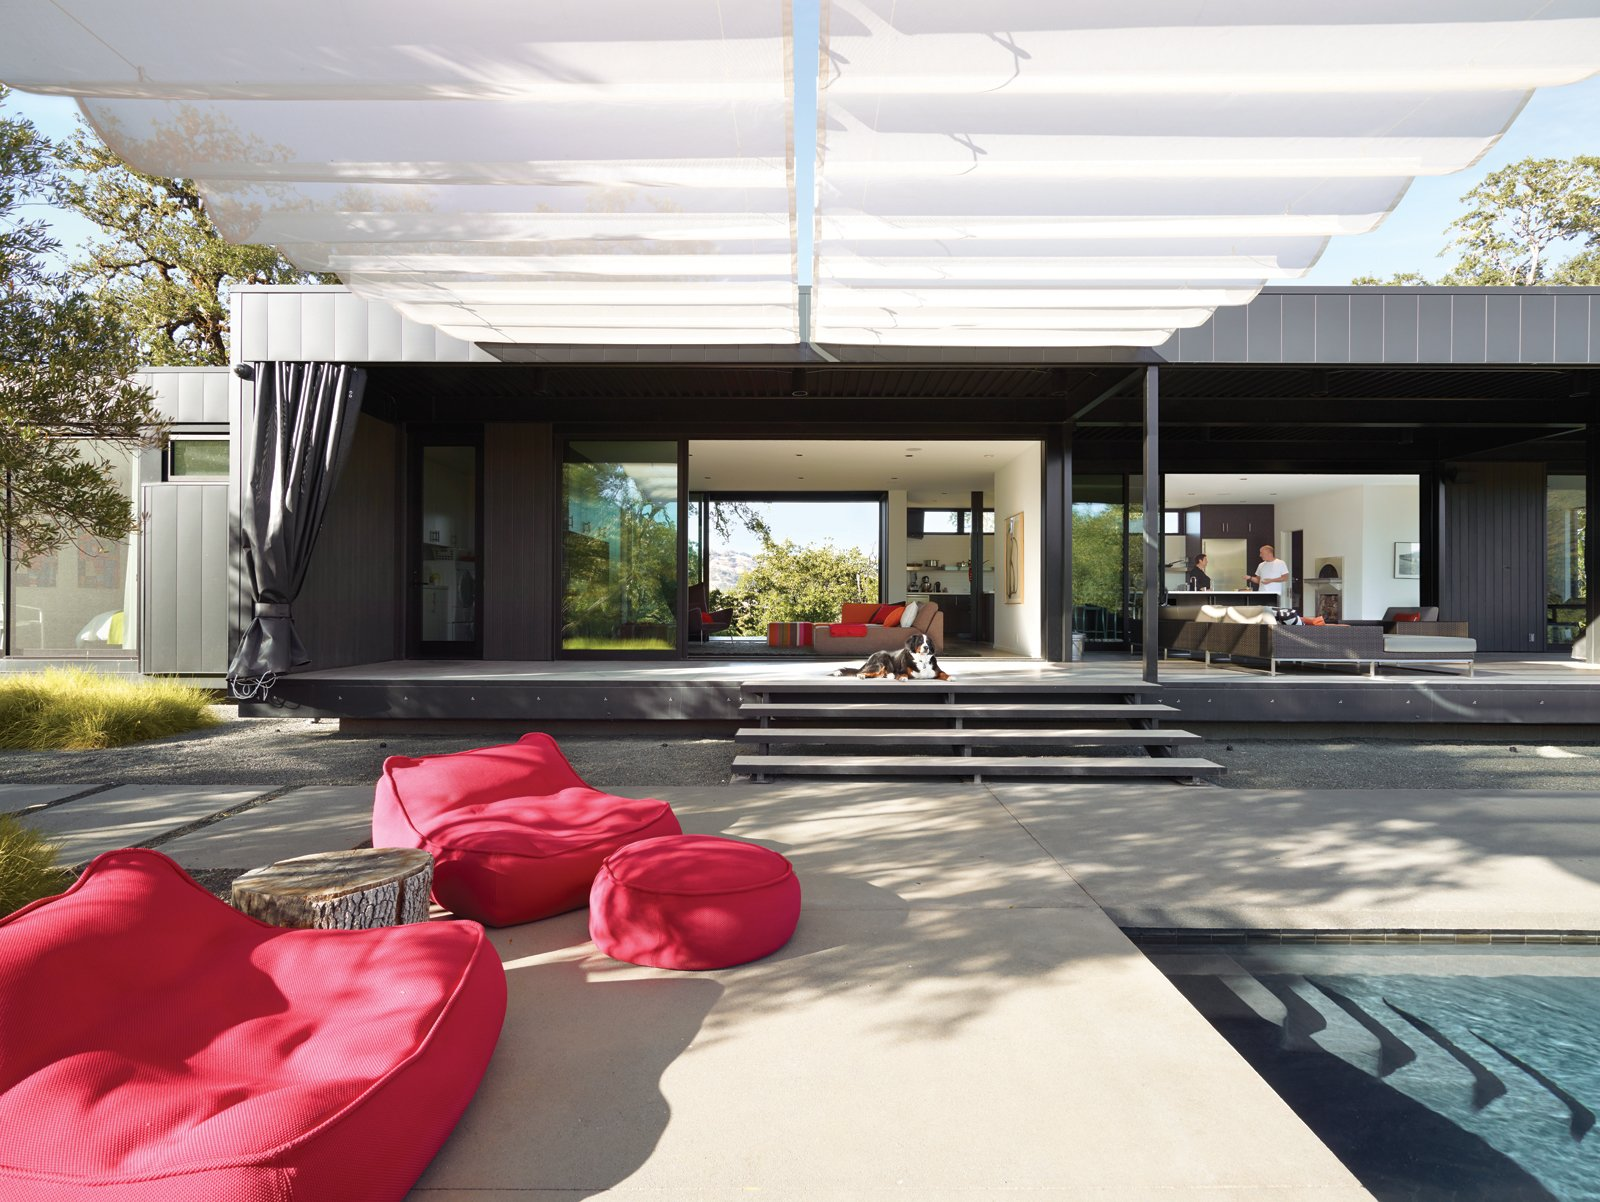 In the foreground are Float beanbag chairs and poufs from Paola Lenti. Mamagreen sofas nestle near the house on the sun-dappled deck. A 9.5-foot-tall shade cloth curtain seals off the entire length of the house when the couple is away, keeping the heat out of the interior and preventing accidental bird suicides against the floor-to-ceiling glass walls.  Photo 3 of 8 in When Prefab Is Painless